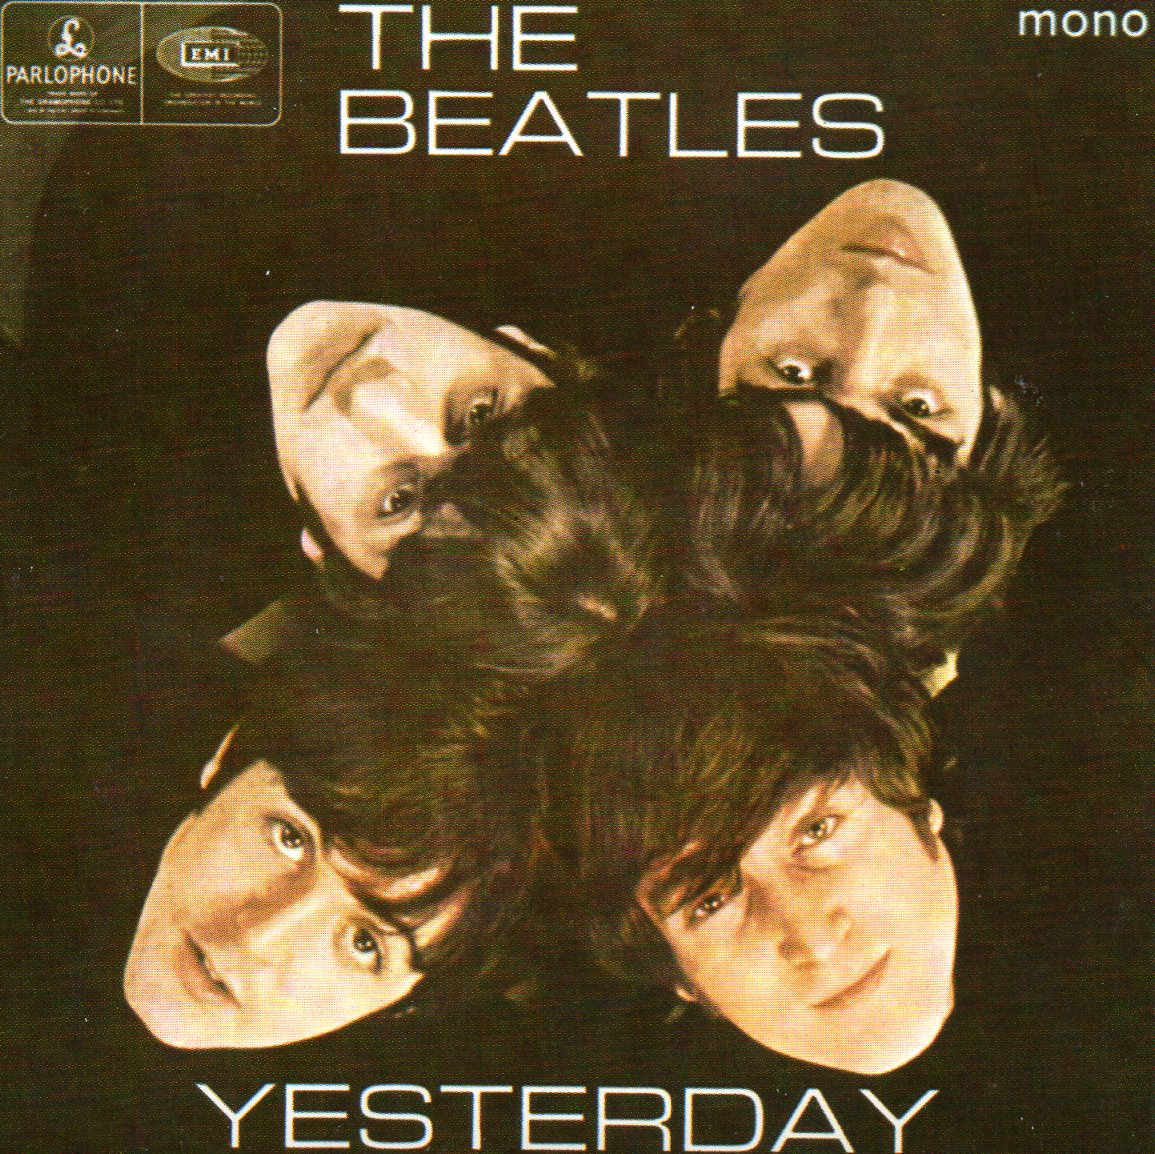 THE BEATLES - Yesterday EP REPLICA 4-TRACK CARD SLEEVE - CD single